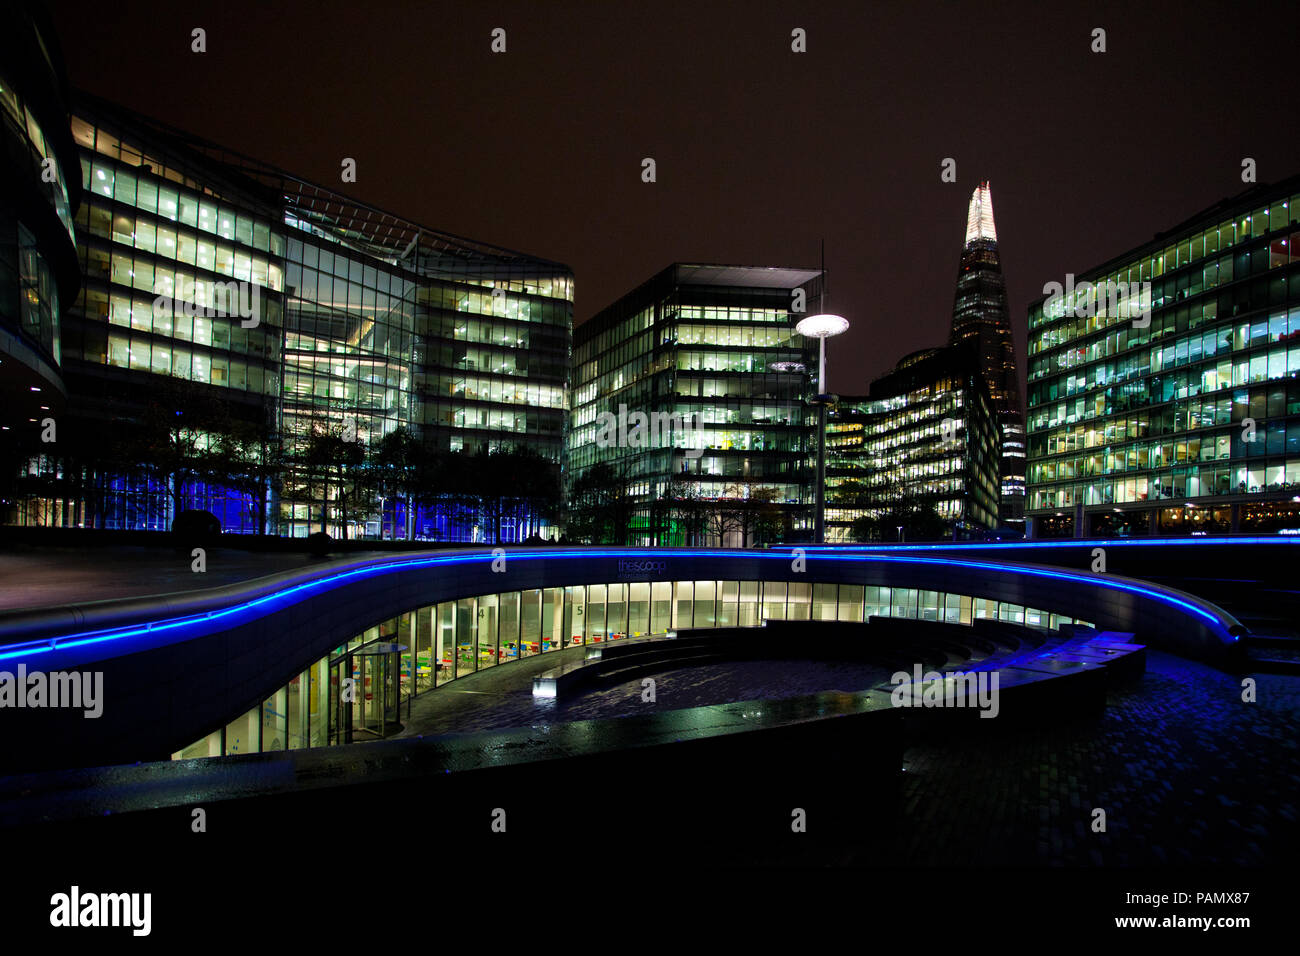 London Assembly on the Southbank at night - Stock Image